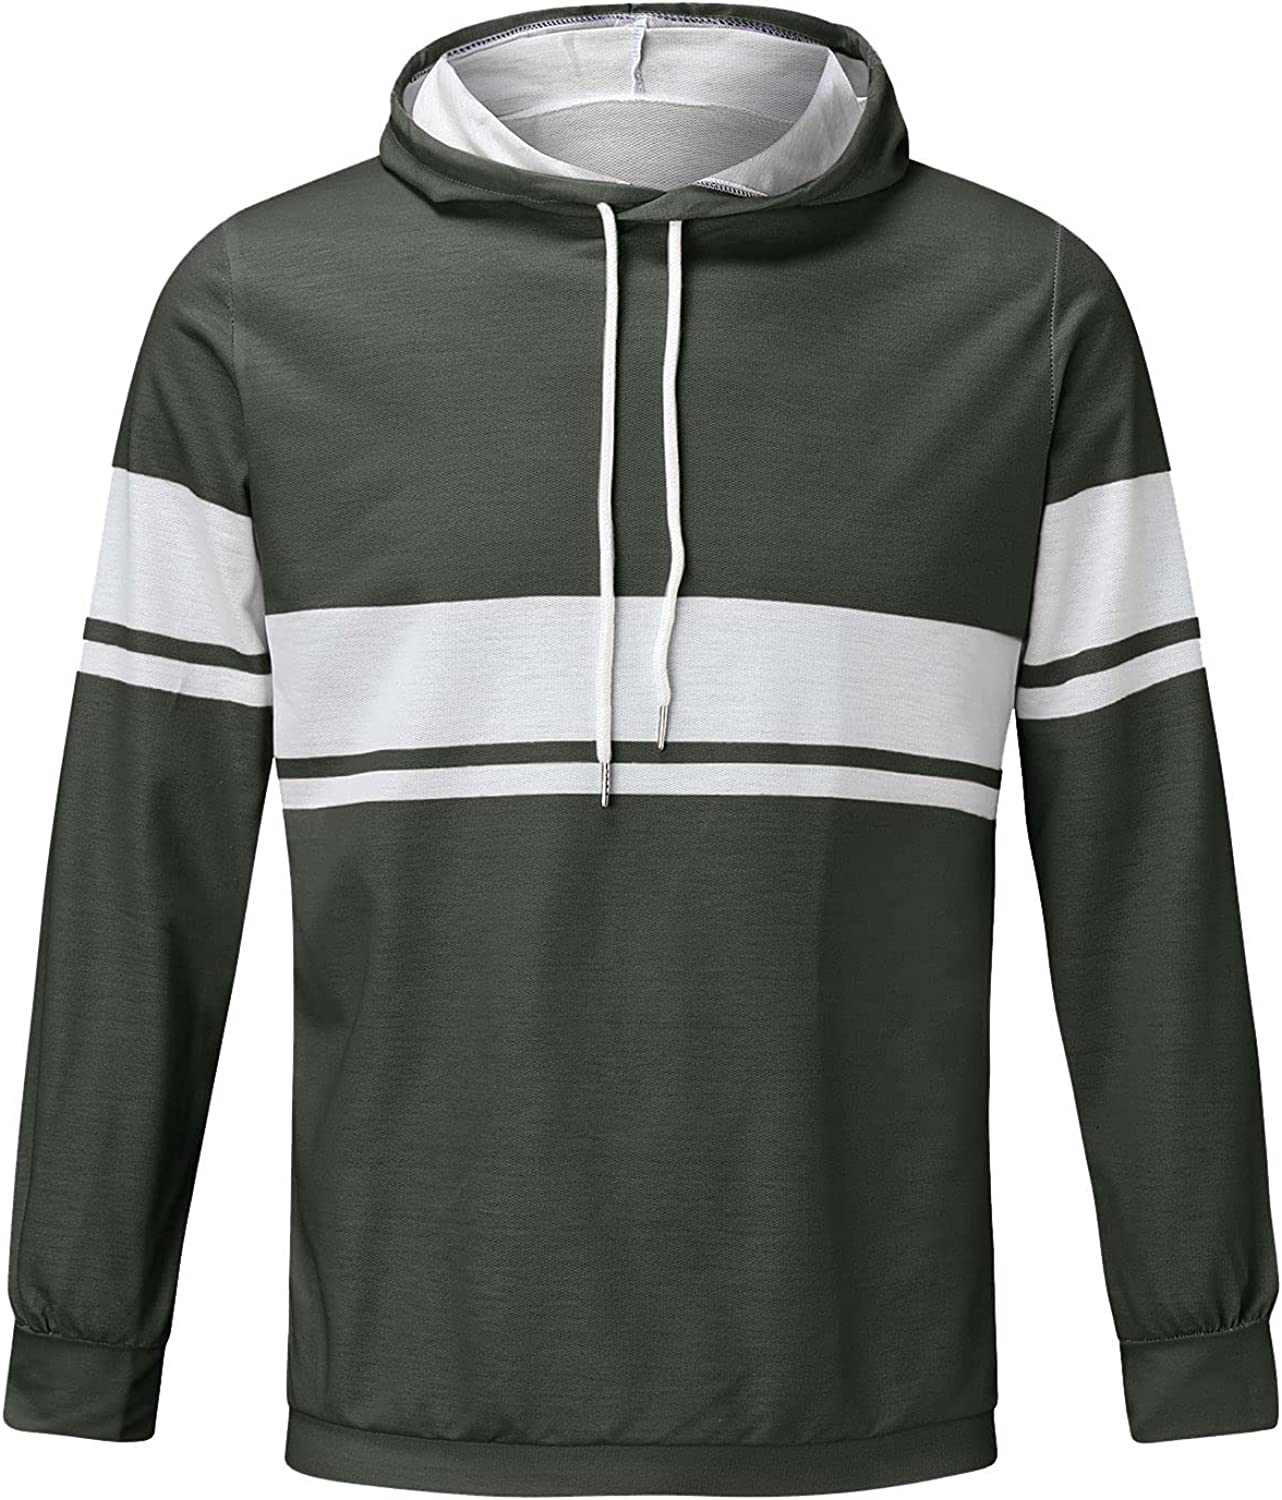 Men's Long Sleeve Tops Plus Size Workout Drawstring Pullover Sweatshirt Casual Loose Hooded Sports Outwear with Pockets